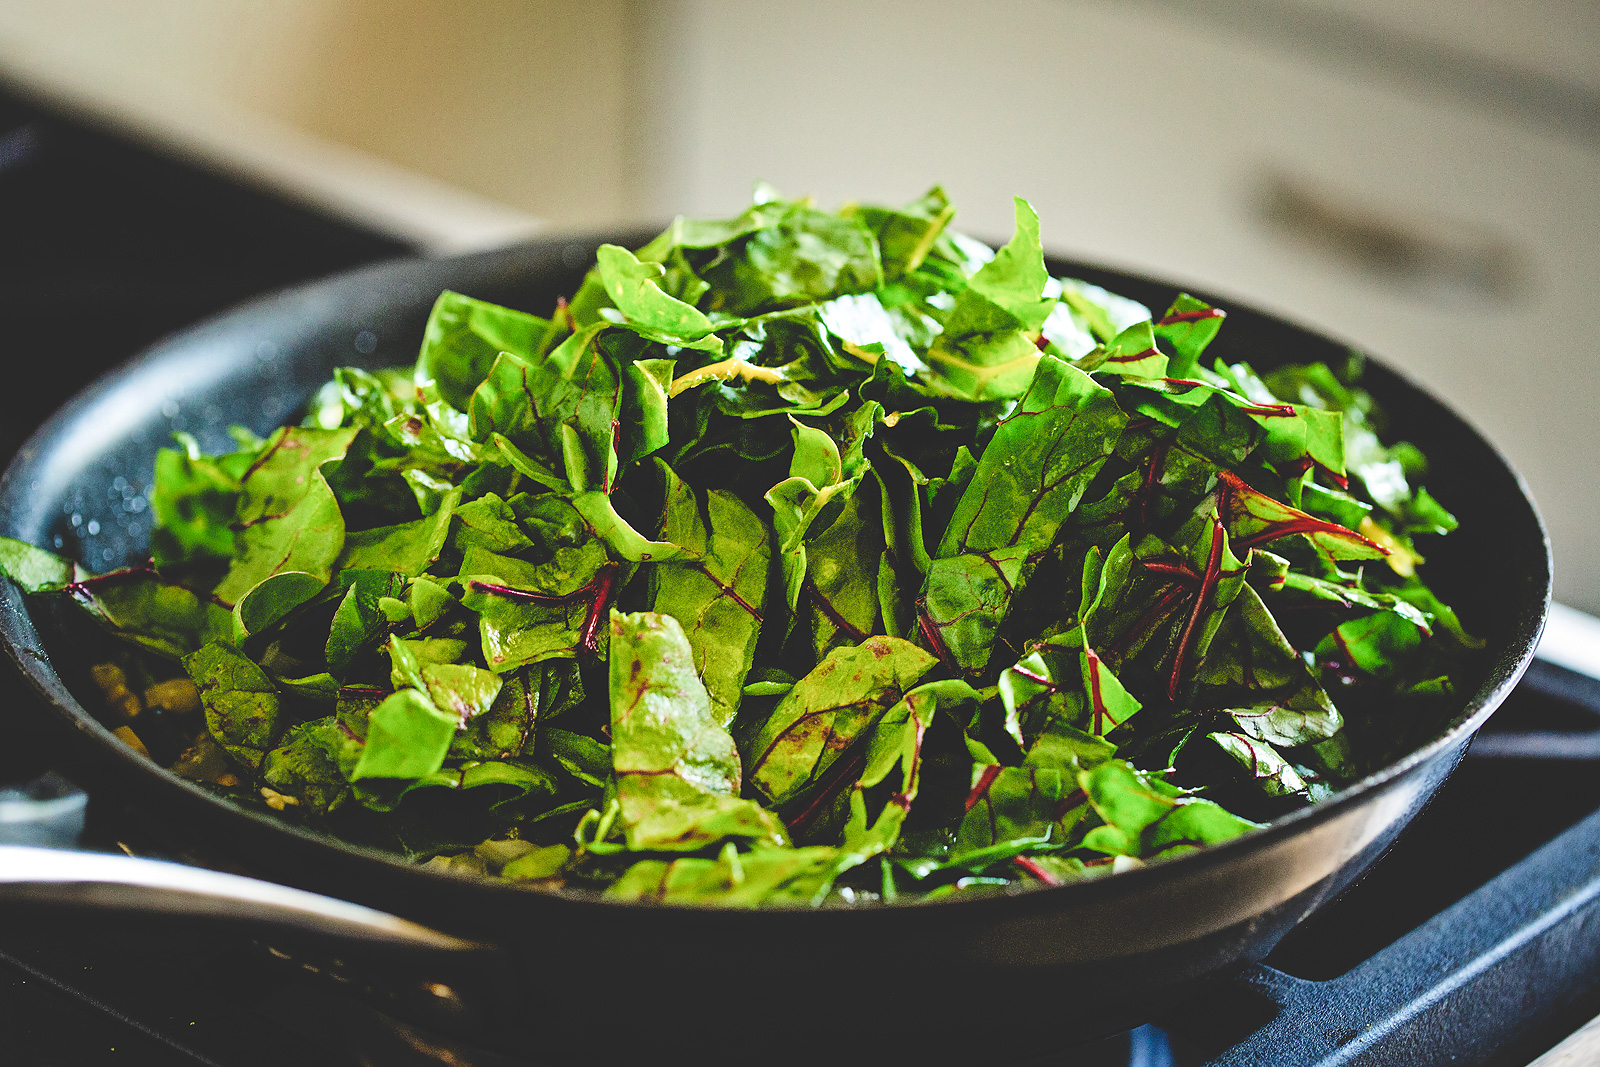 Mound of chard in a skillet on the stove.